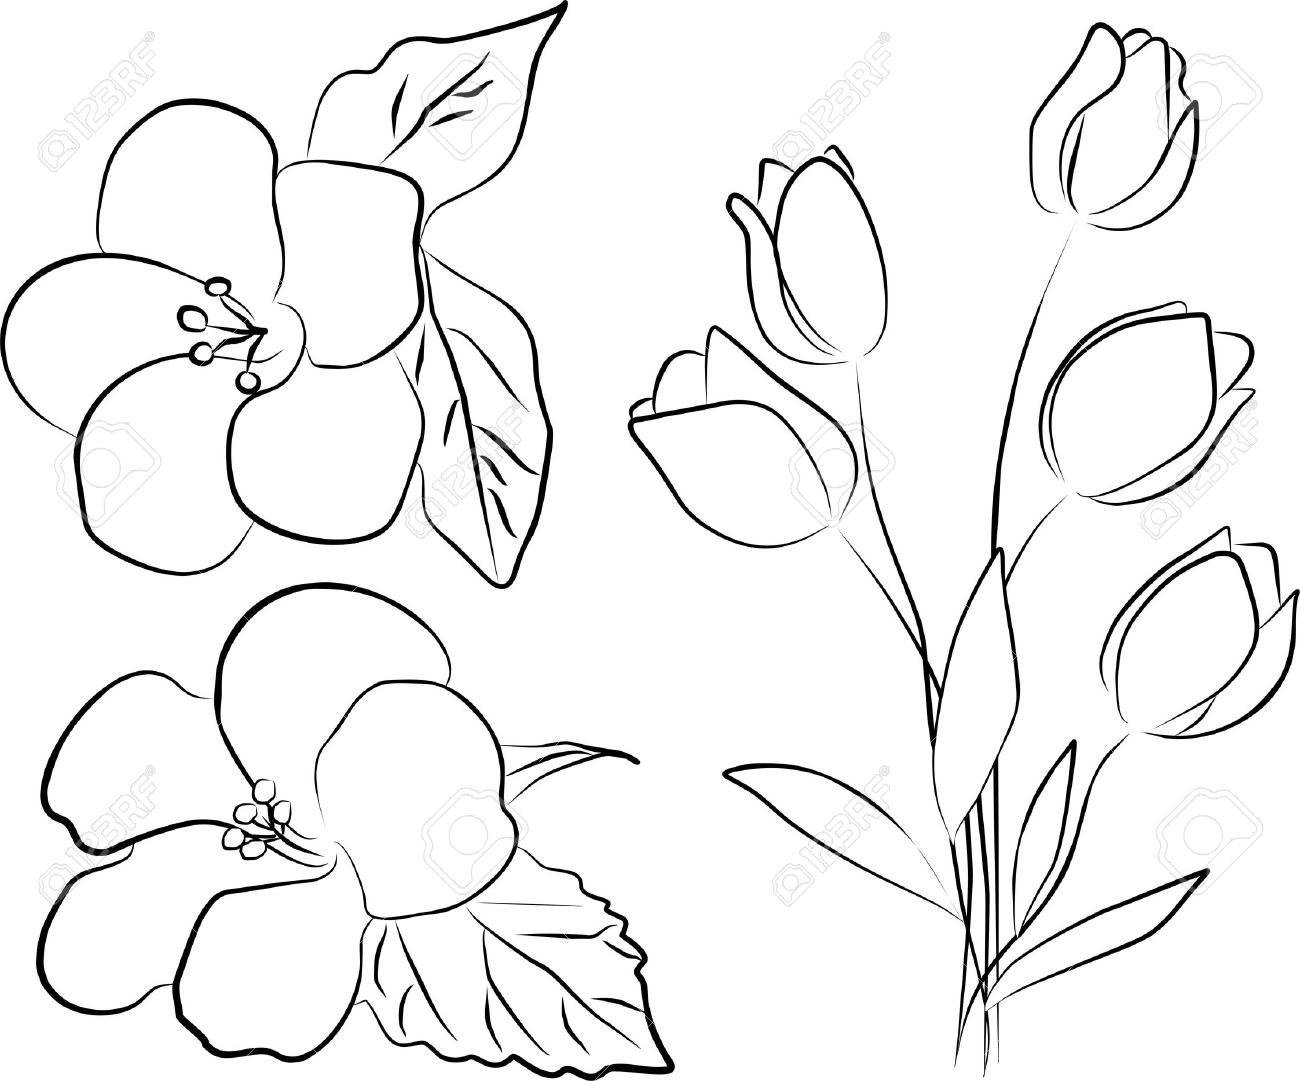 1300x1081 Eletragesi Easy Flower Drawing Outline Images